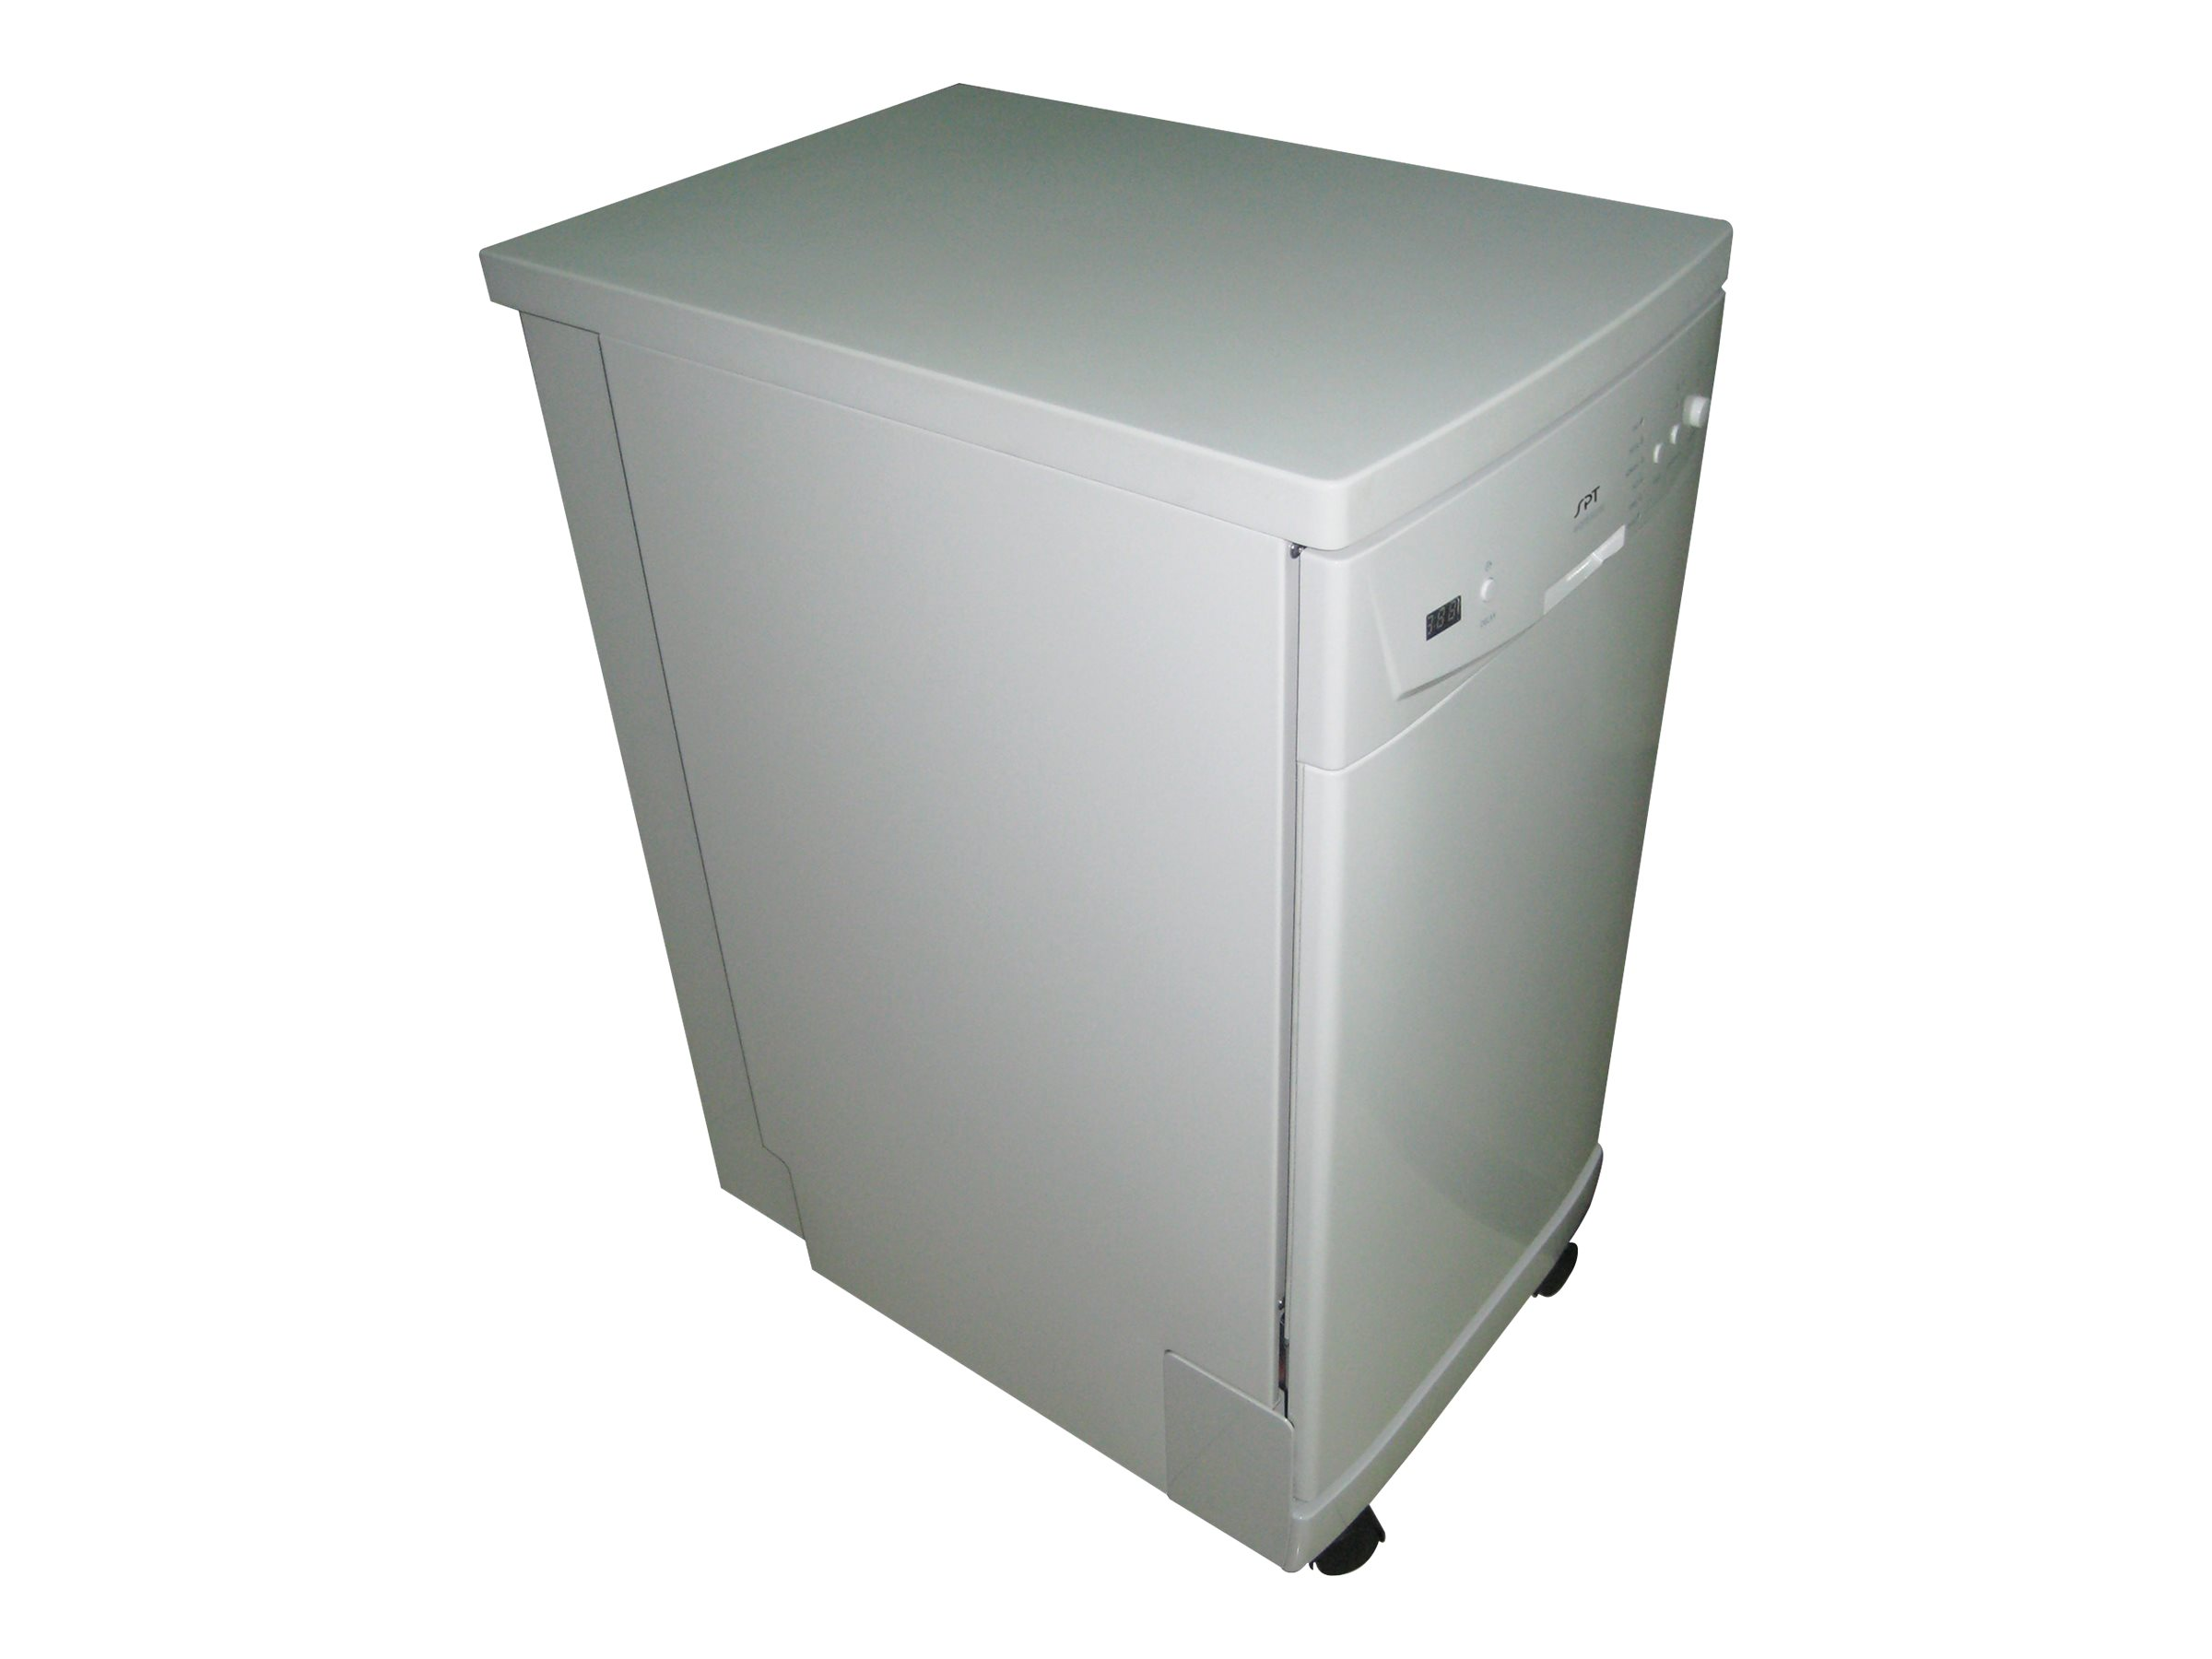 SPT SD 9241SS Energy Star Portable Dishwasher, 18 Inch, Stainless Steel    Walmart.com